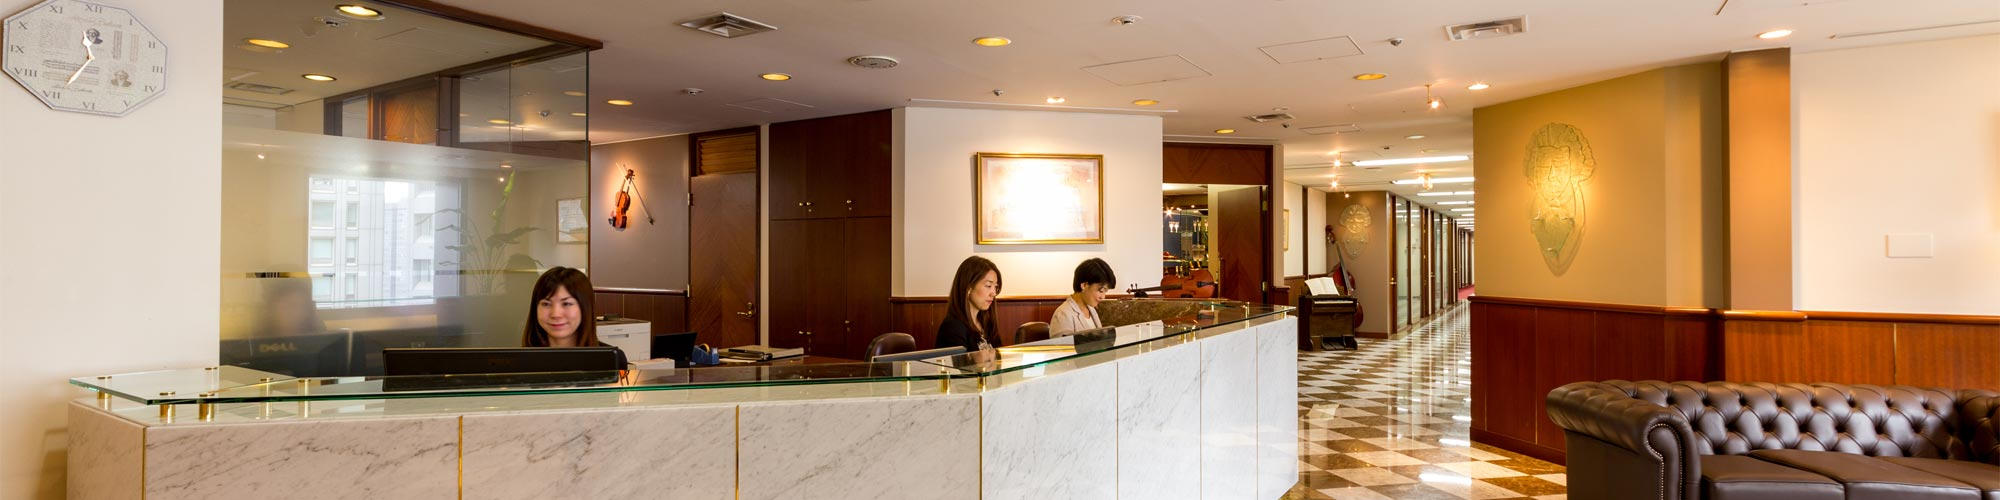 Hibiya Central Building Reception